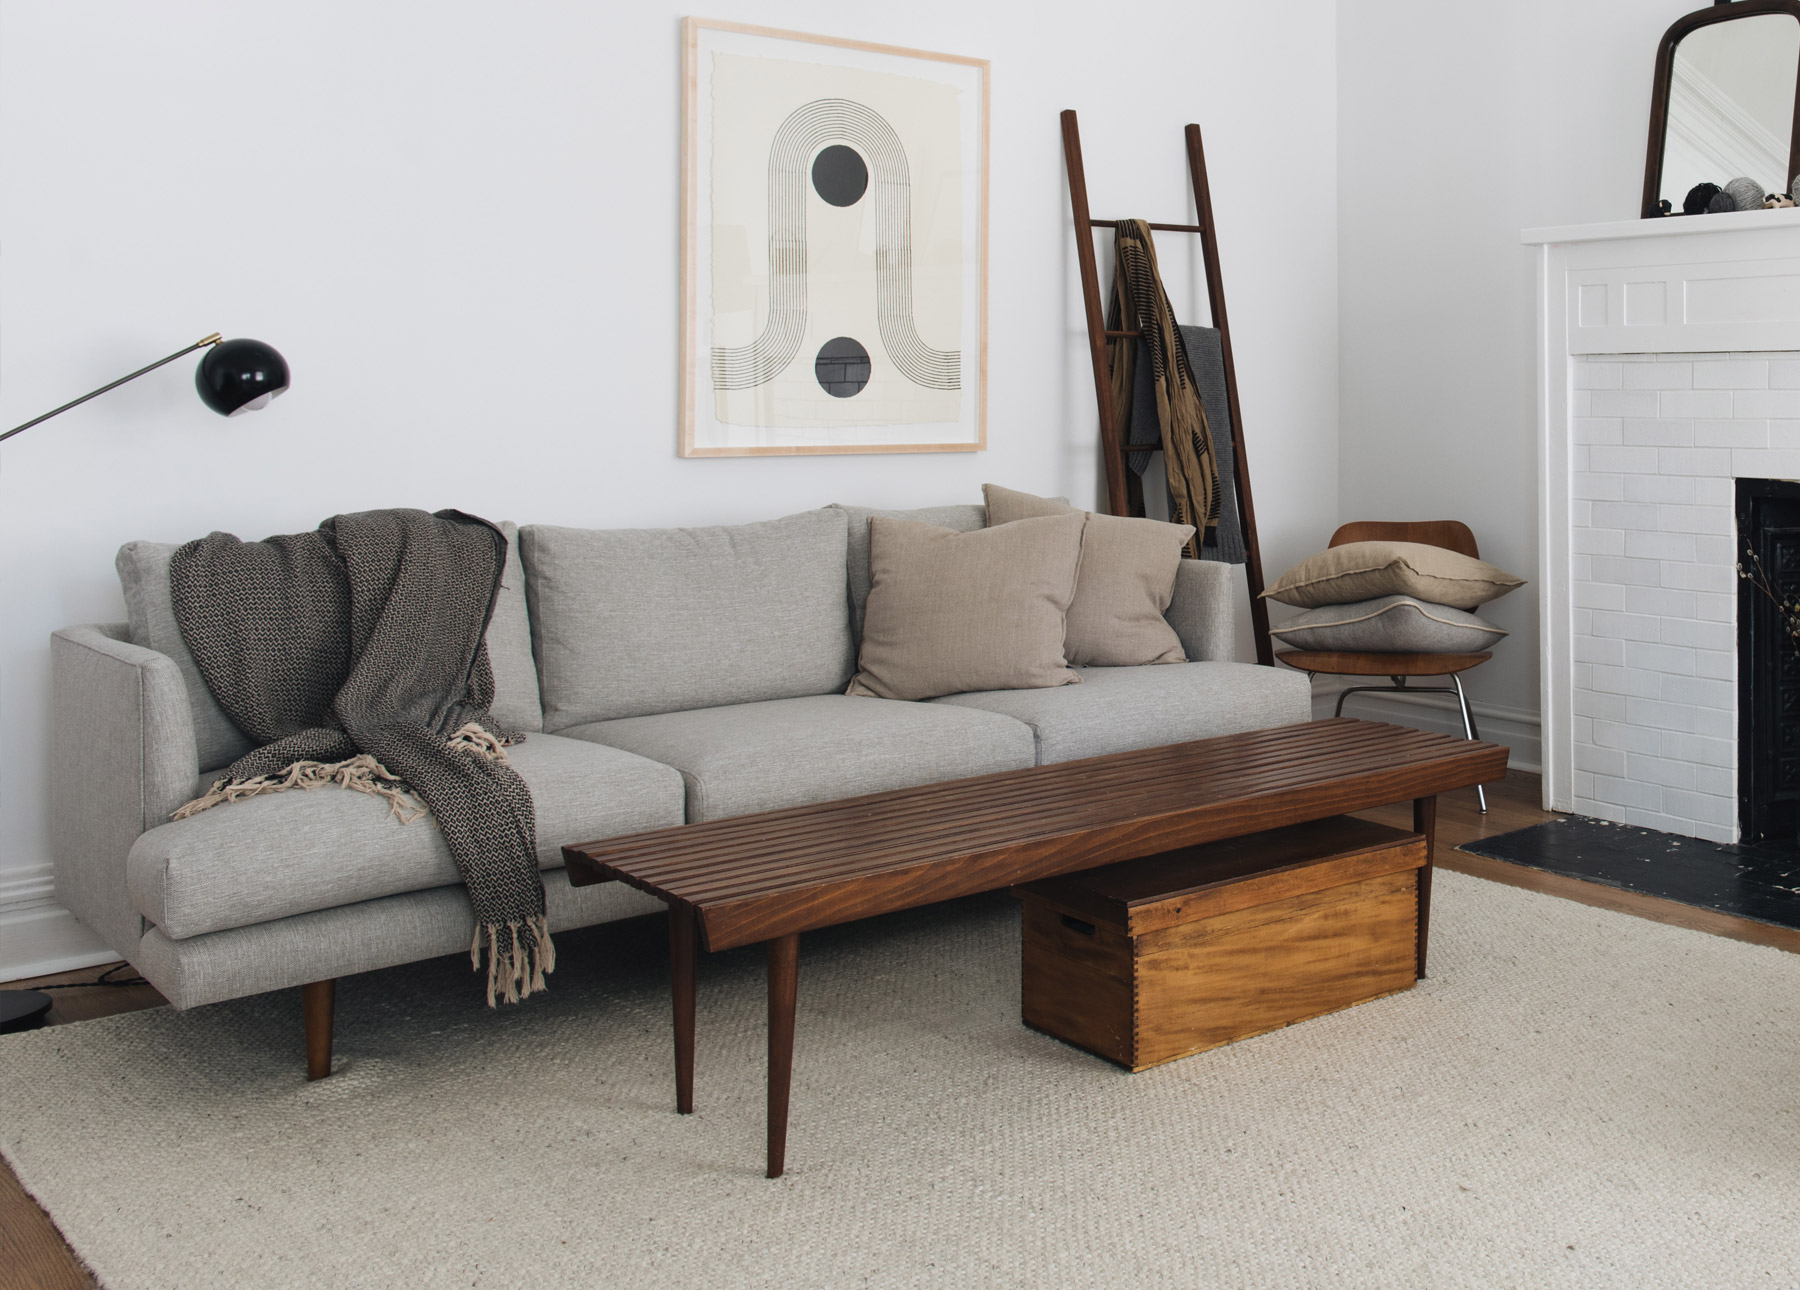 A mid-century modern gray sofa sits on a creamy wool rug.